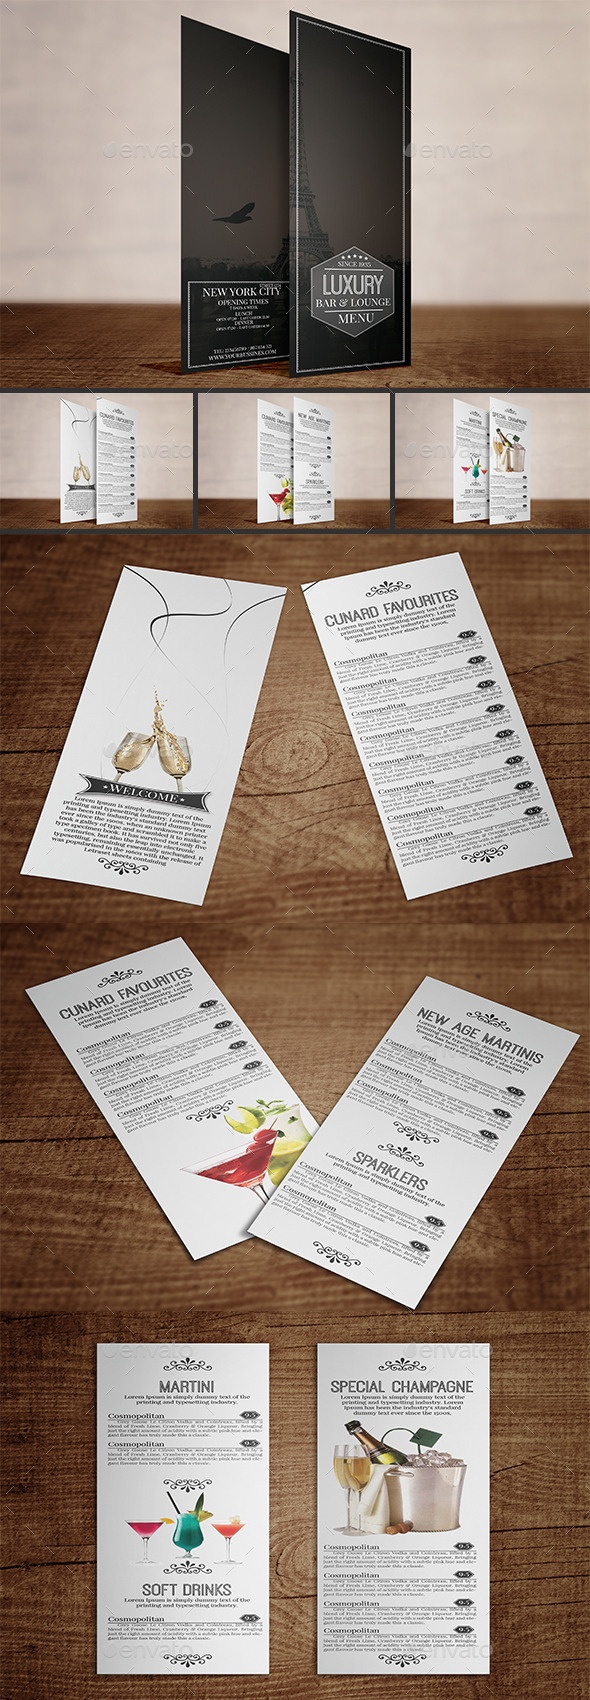 GraphicRiver Luxury Bar&Lounge Menu Volume 2 9643363